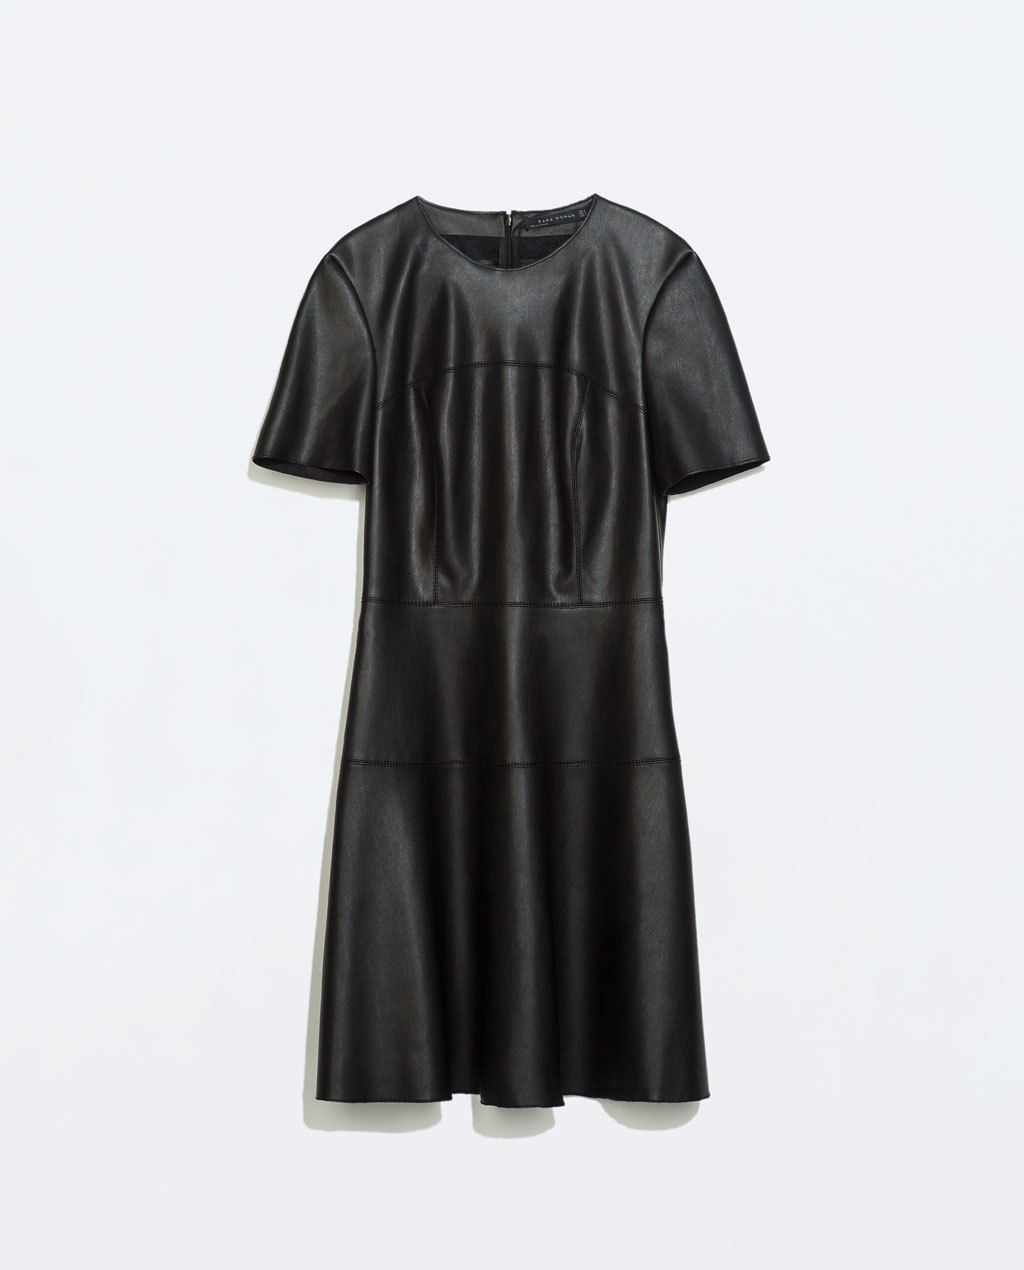 Faux Leather Dress - length: mid thigh; pattern: plain; predominant colour: black; occasions: evening, creative work; fit: fitted at waist & bust; style: fit & flare; neckline: crew; hip detail: soft pleats at hip/draping at hip/flared at hip; sleeve length: short sleeve; sleeve style: standard; texture group: leather; pattern type: fabric; fibres: pvc/polyurethene - 100%; season: a/w 2014